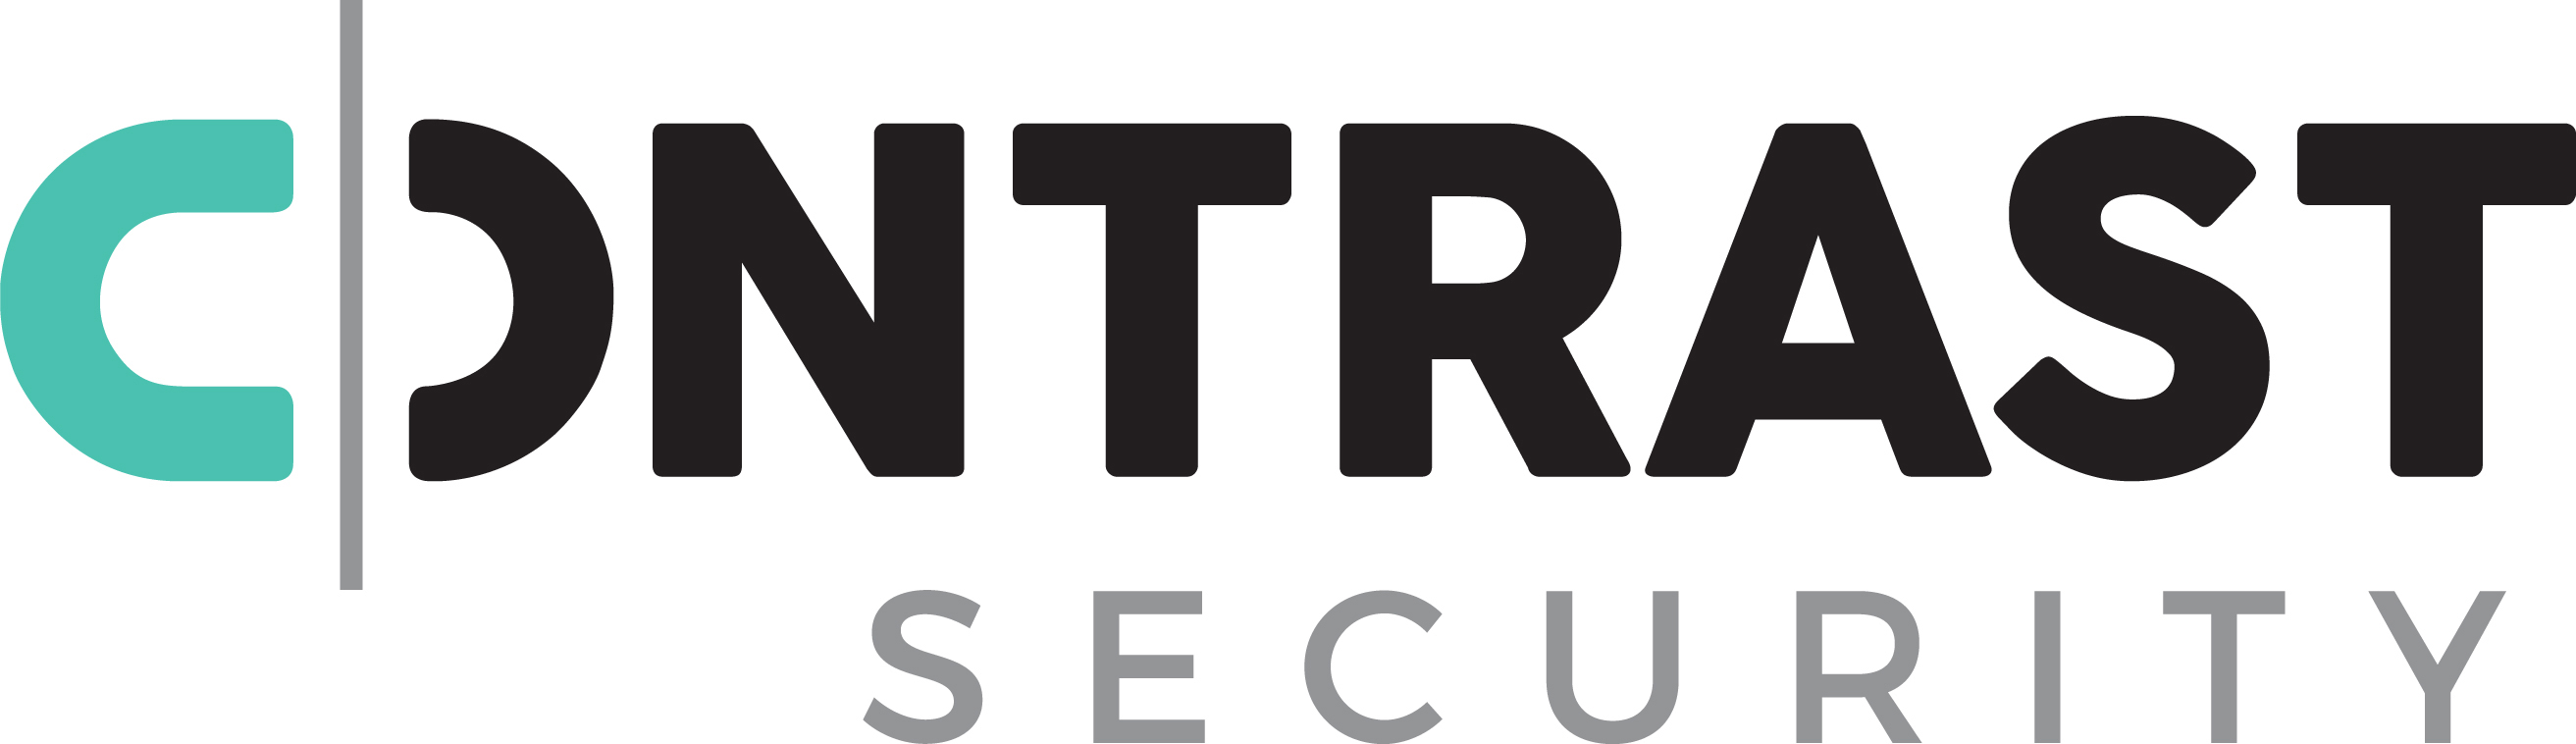 Image result for contrastsecurity